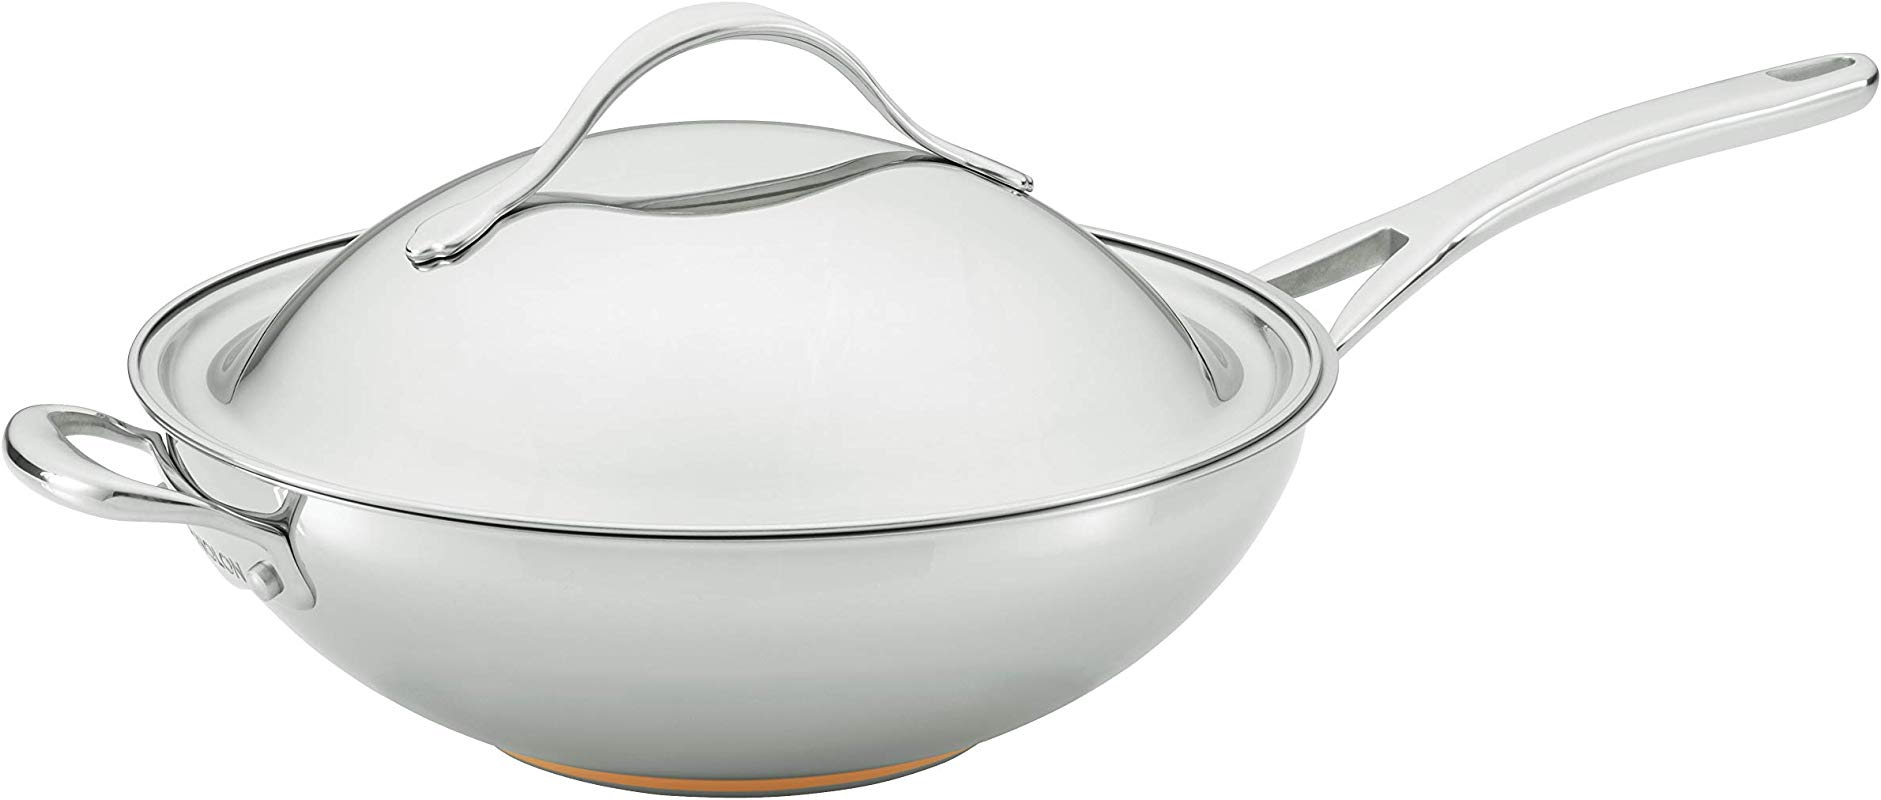 Anolon 77272 Nouvelle Copper Stainless Steel Stirfry Pan 12 5 Inch